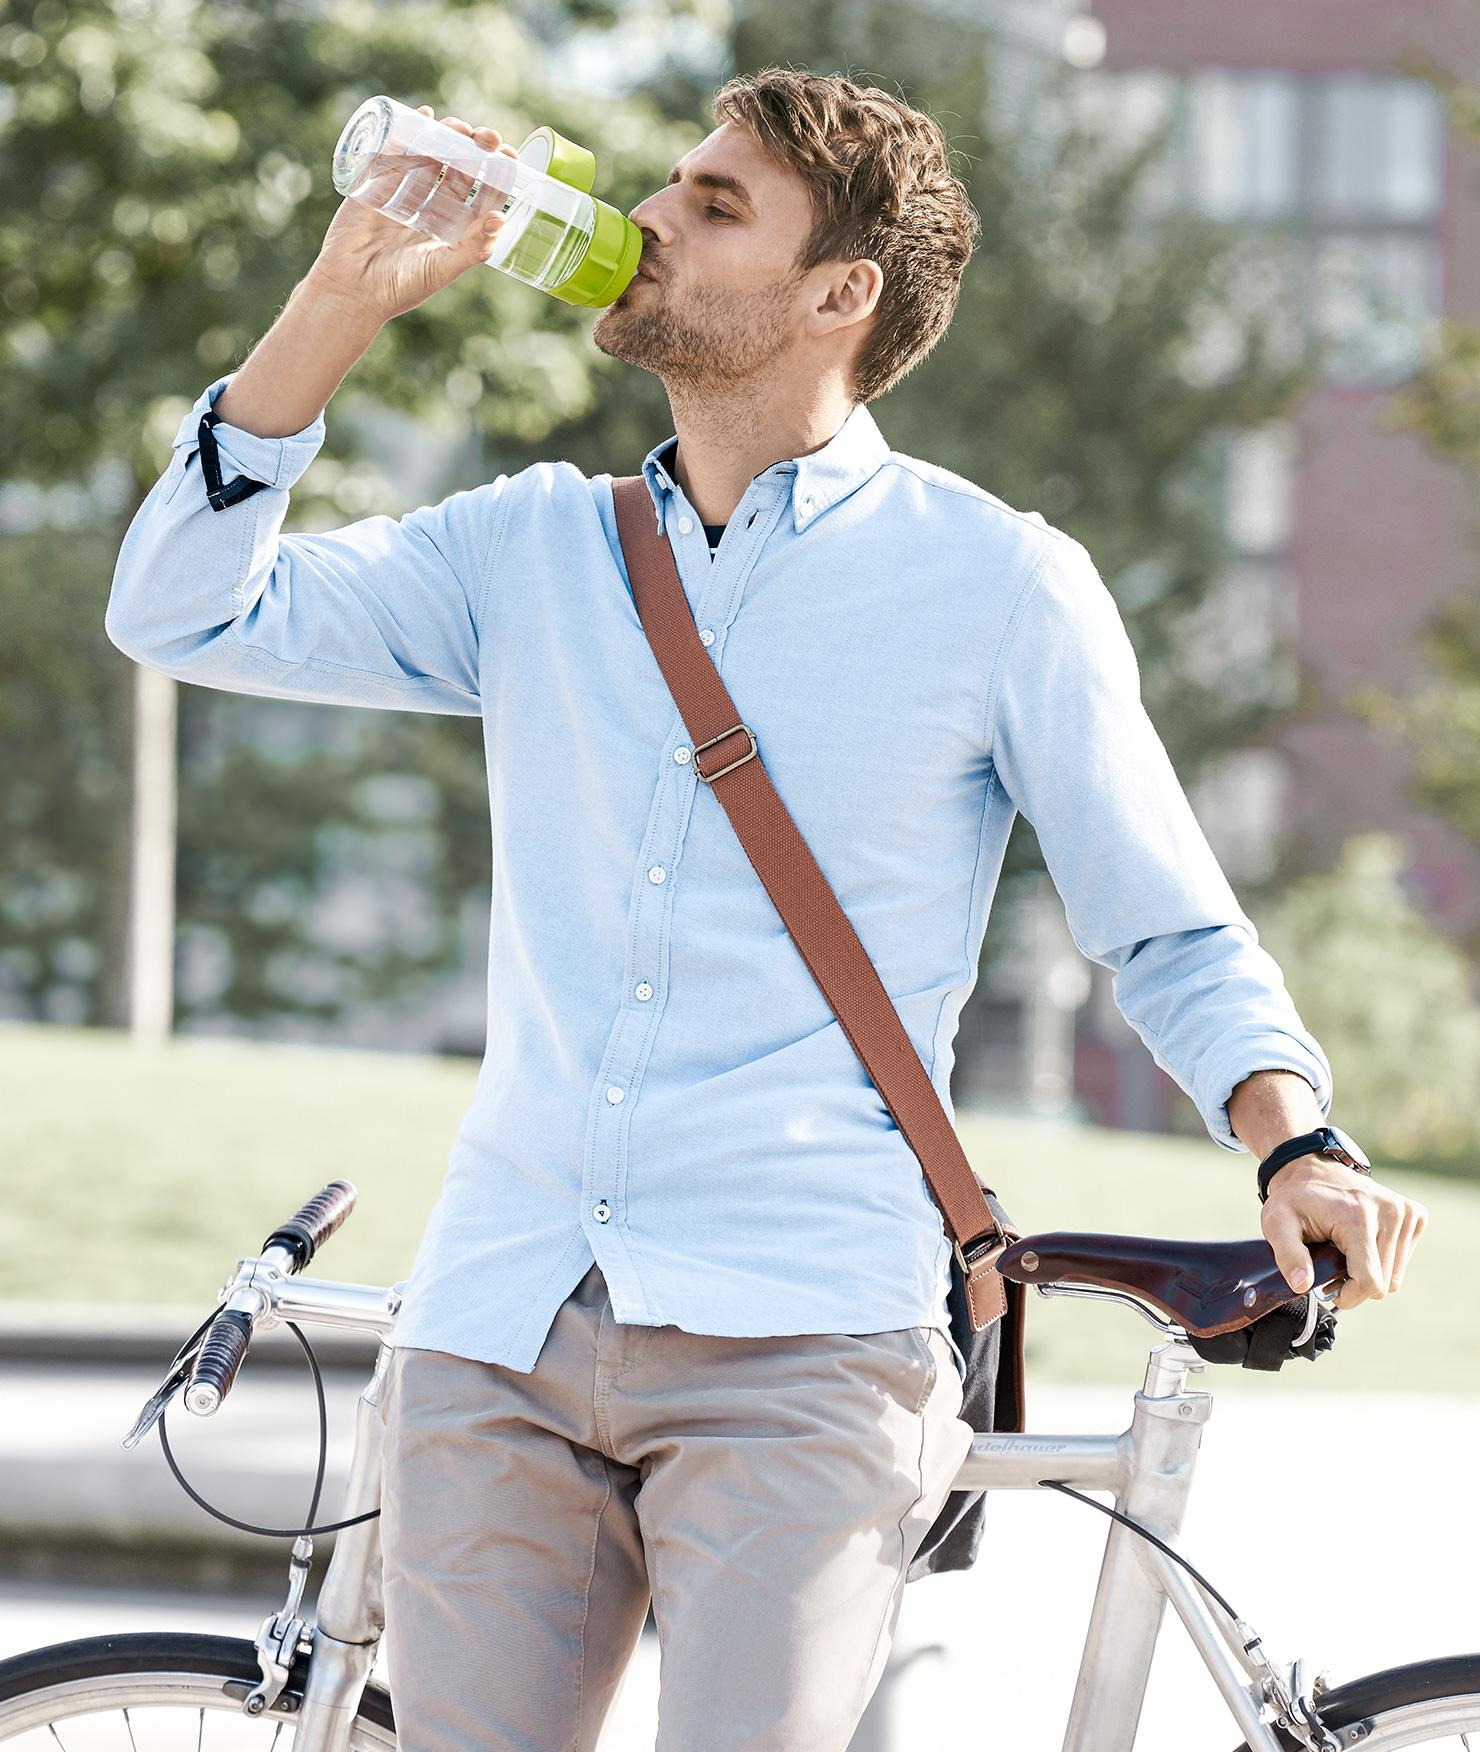 BRITA healthier planet man on bike drinking water